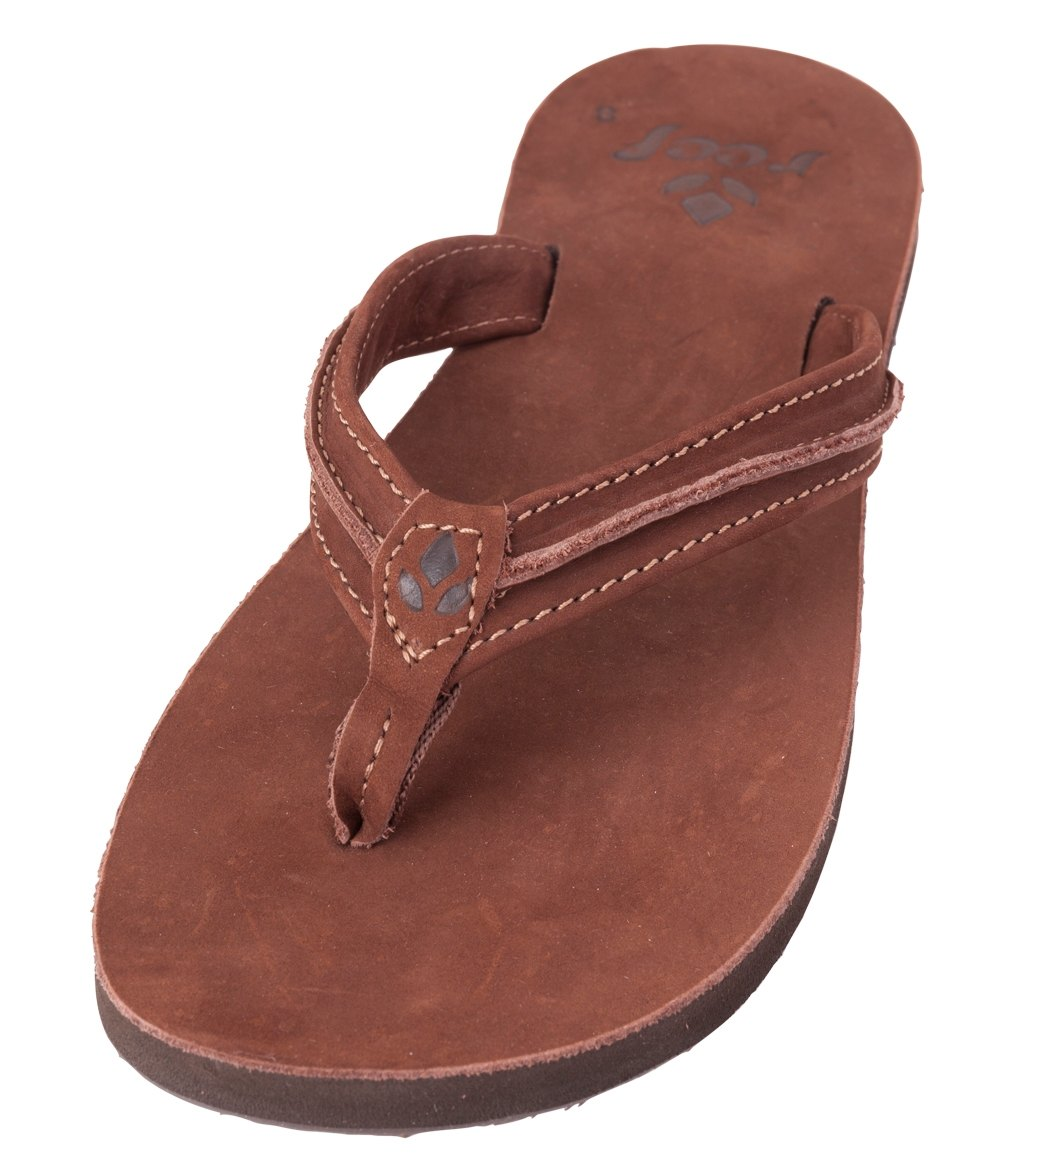 a4f338055b56 Reef Women s Swing 2 Leather Flip Flop at SwimOutlet.com - Free ...